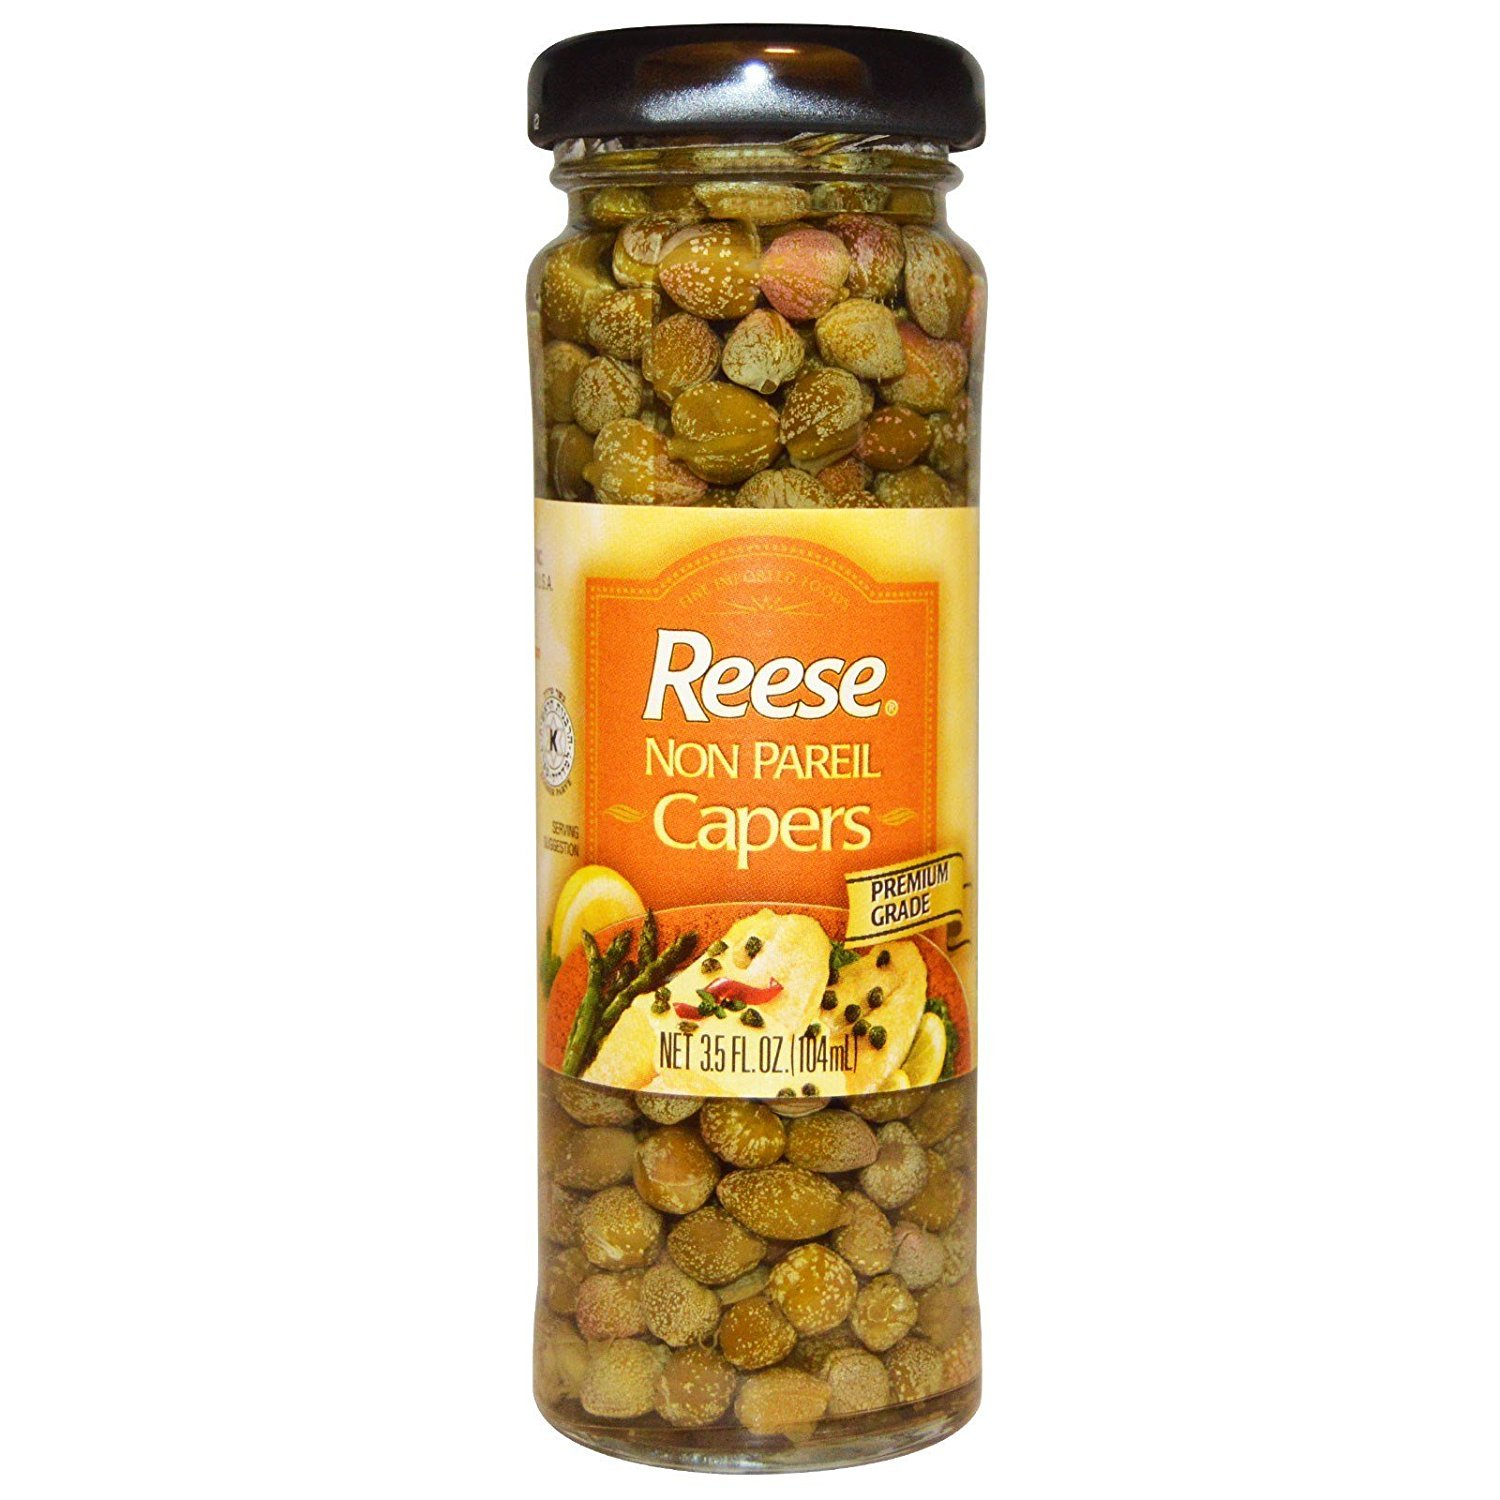 Pack of (2) Reese Non Pareil Capers, 3.5 fl oz